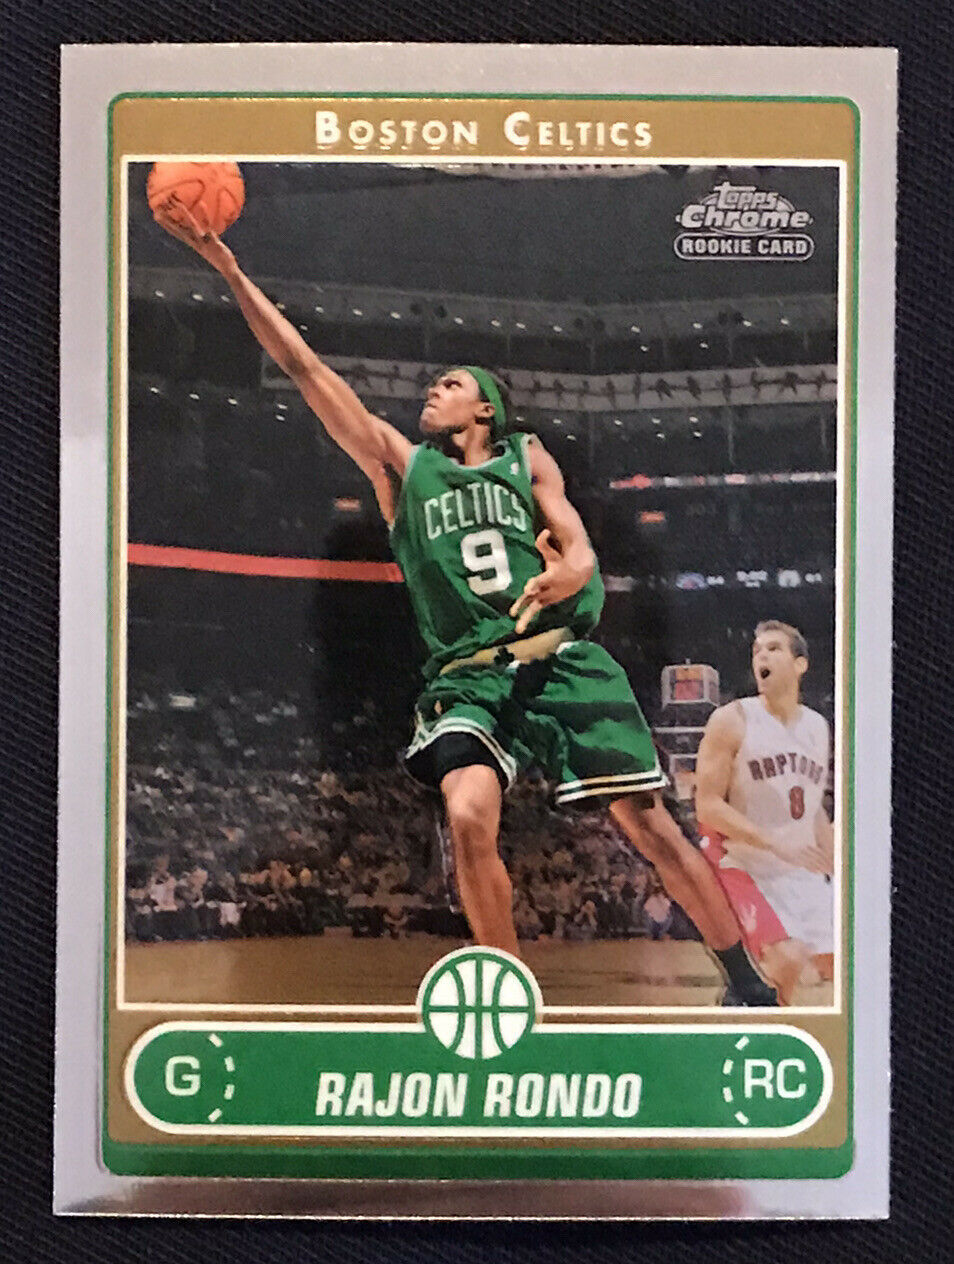 Rajon Rondo 2006 2007 Topps Chrome Series Mint Rookie Card #201